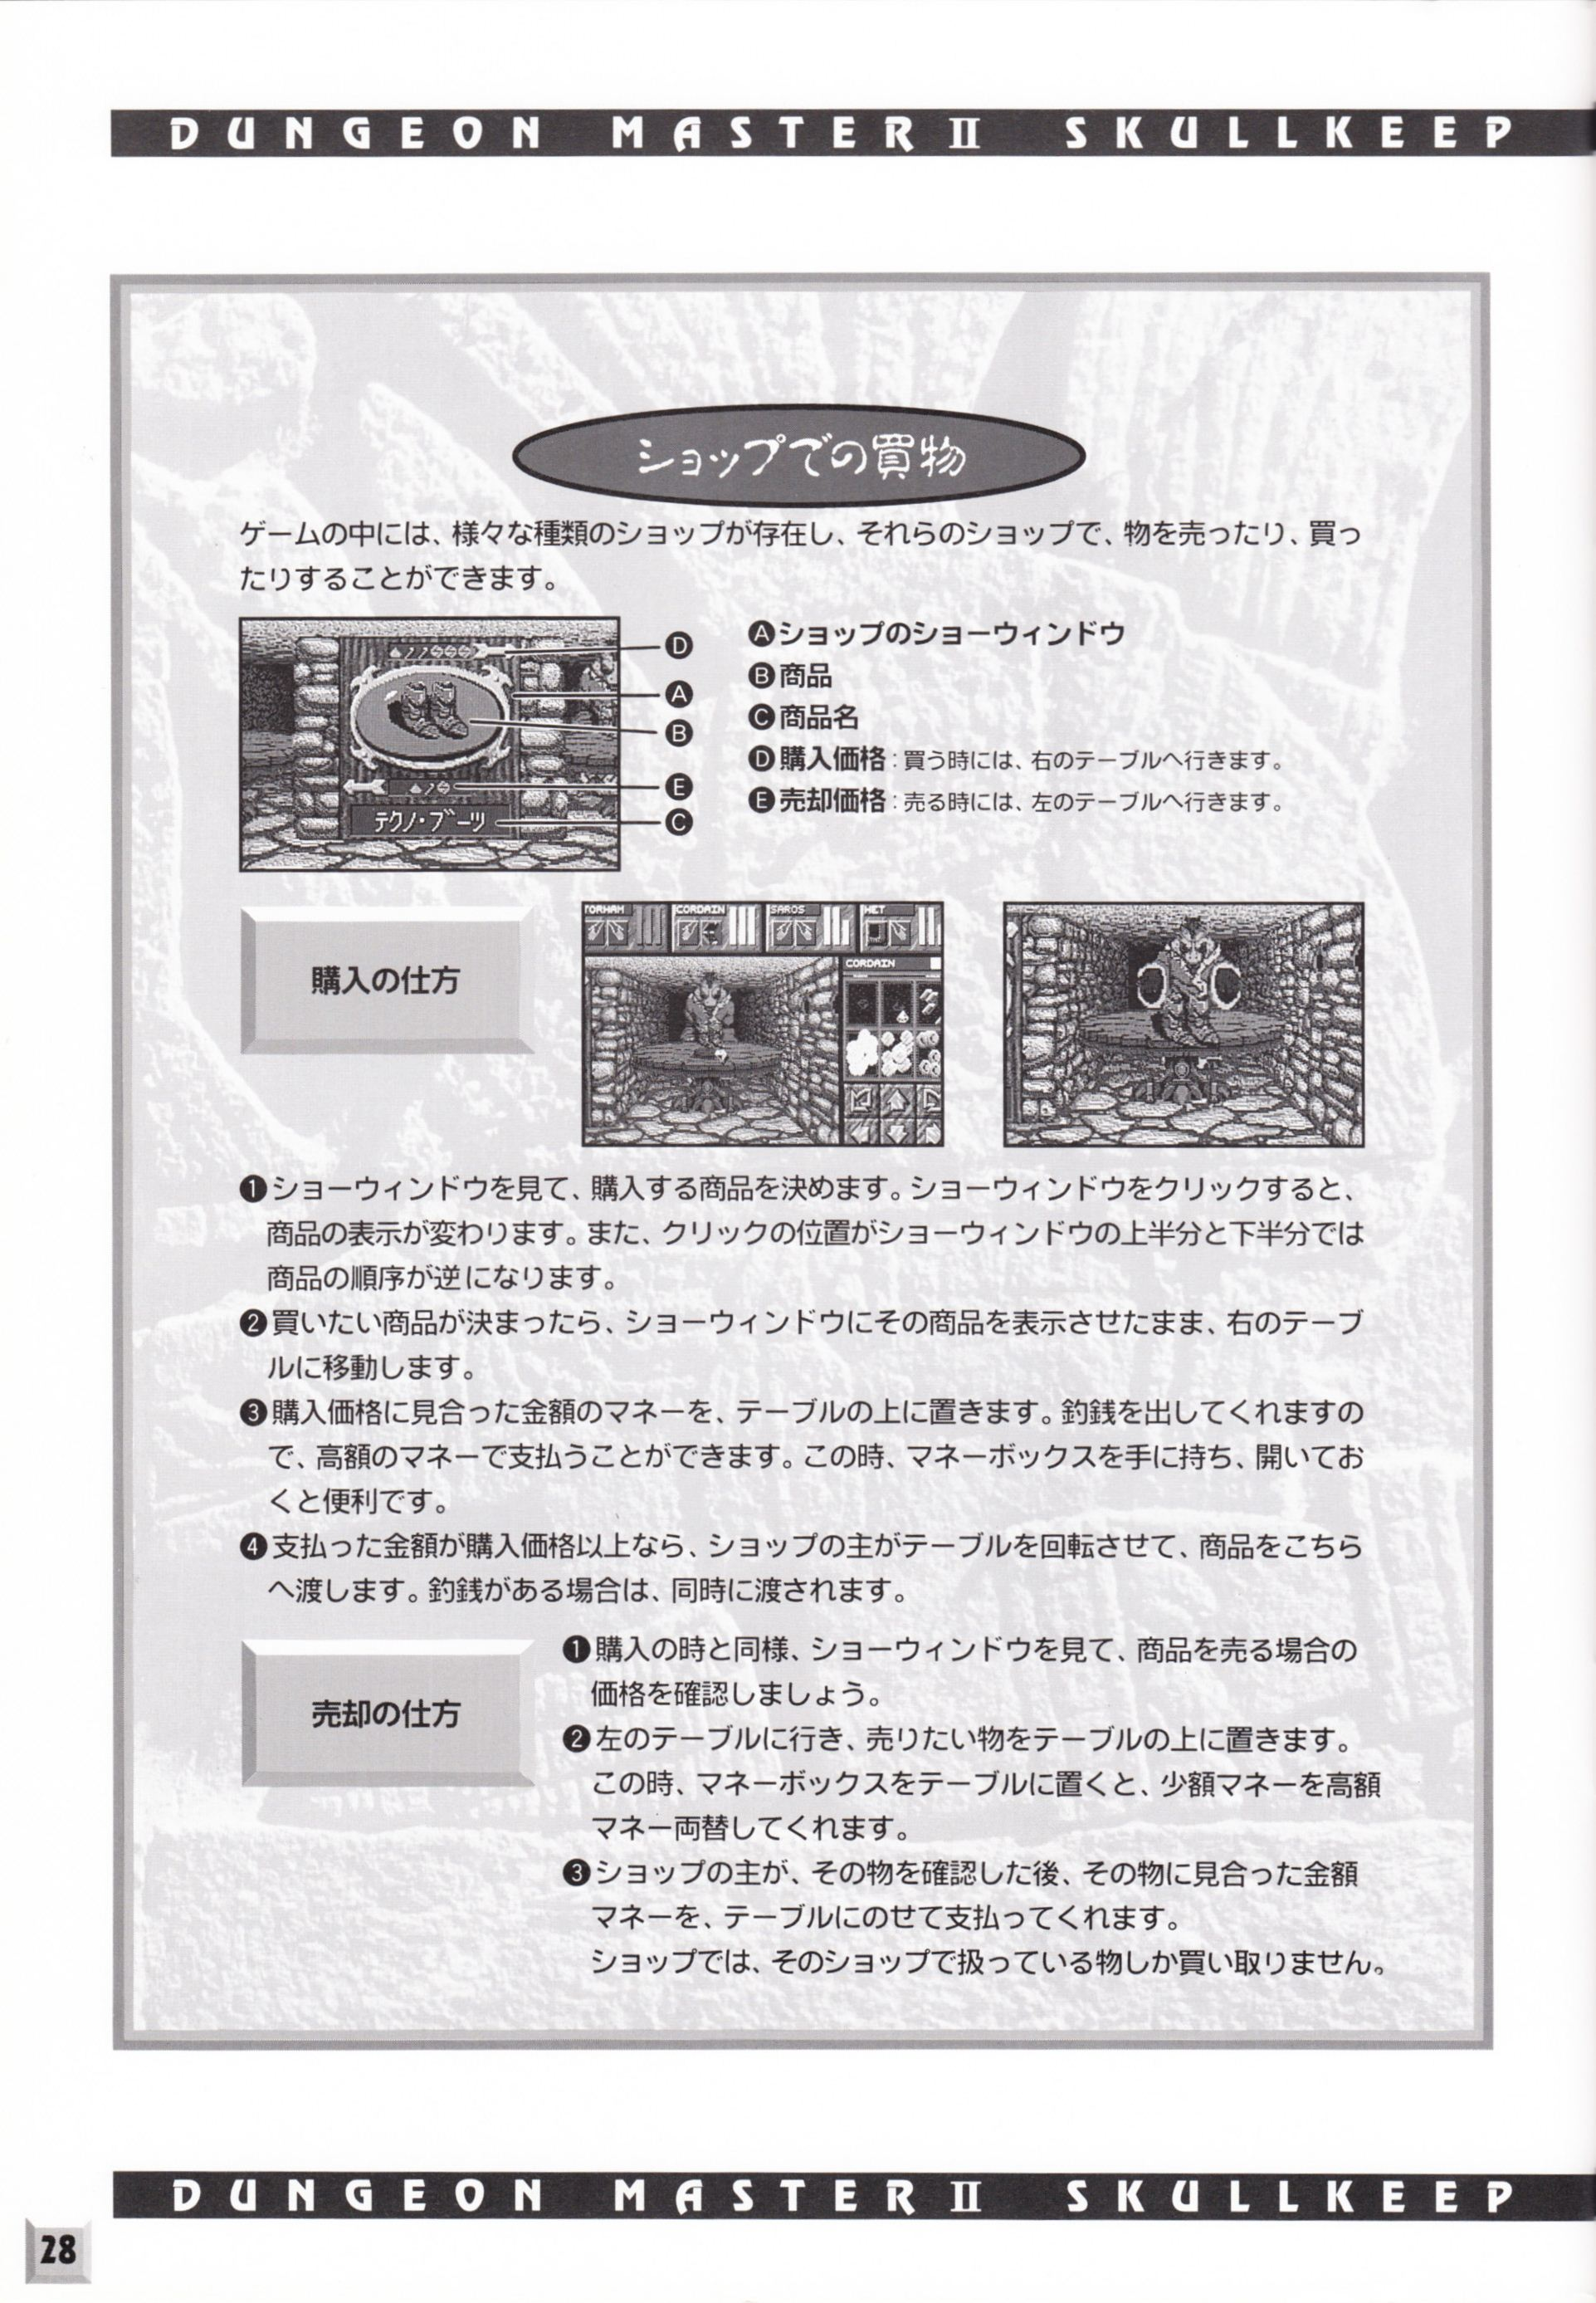 Game - Dungeon Master II - JP - PC-9801 - 3.5-inch - An Operation Manual - Page 030 - Scan